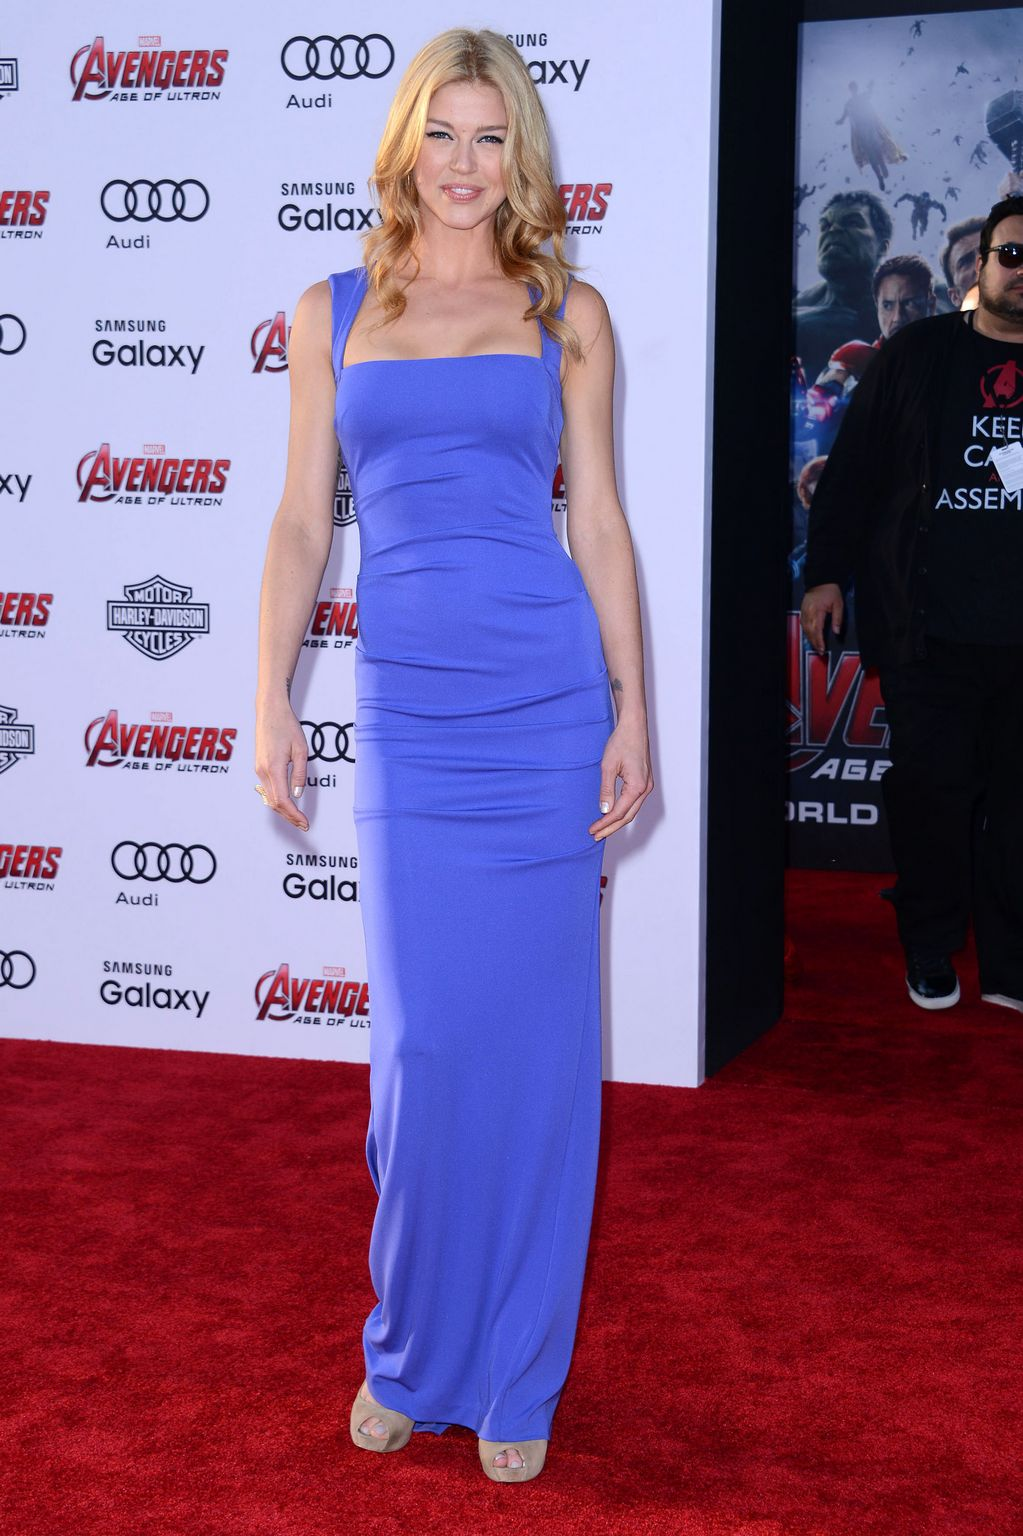 Adrianne Palicki At Avengers: Age Of Ultron Los Angeles Premiere-3